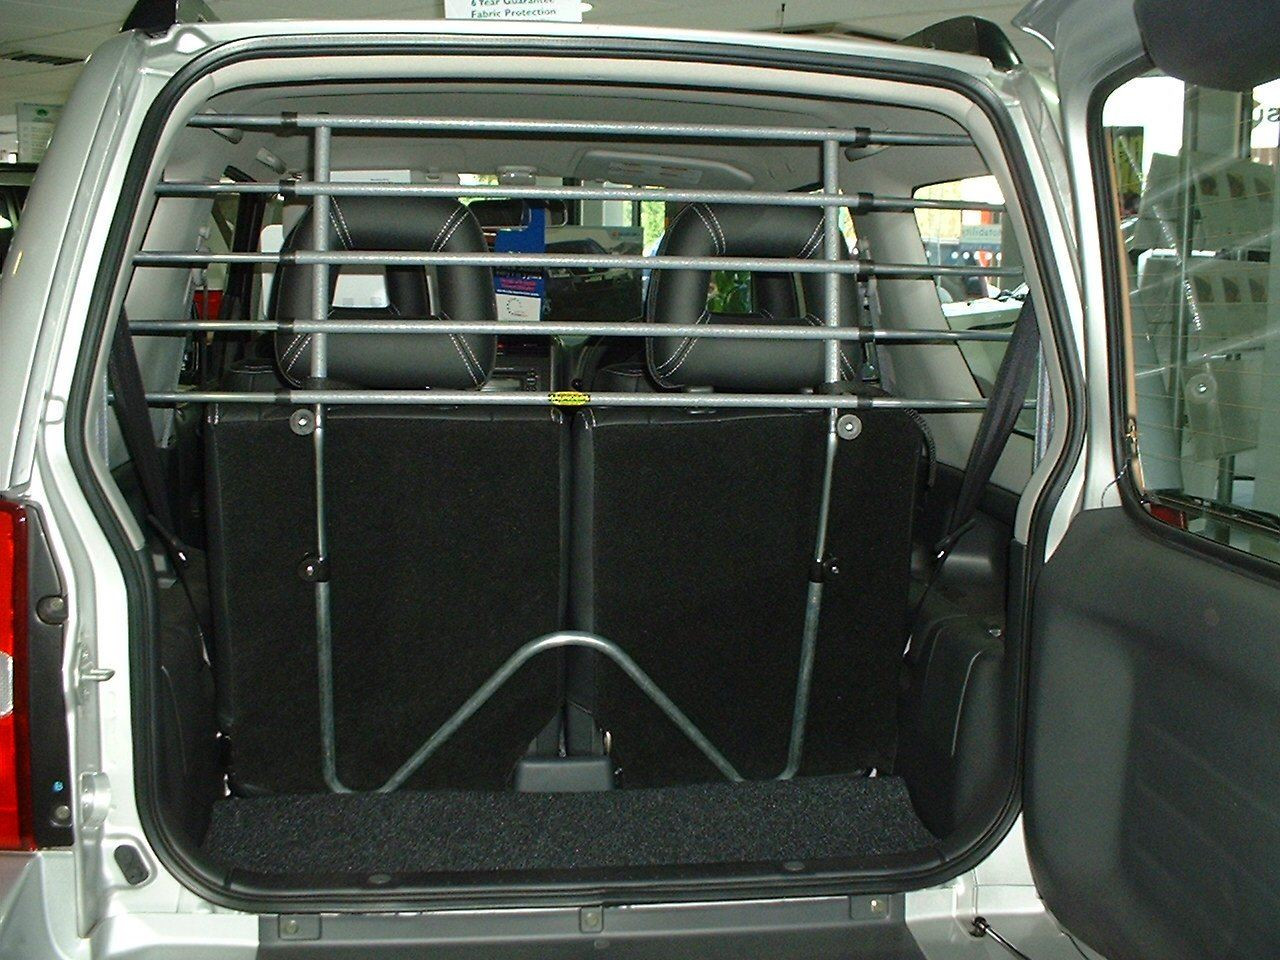 Saunders T95 Dog Guard For Toyota Avensis Estate 1997 - 2003